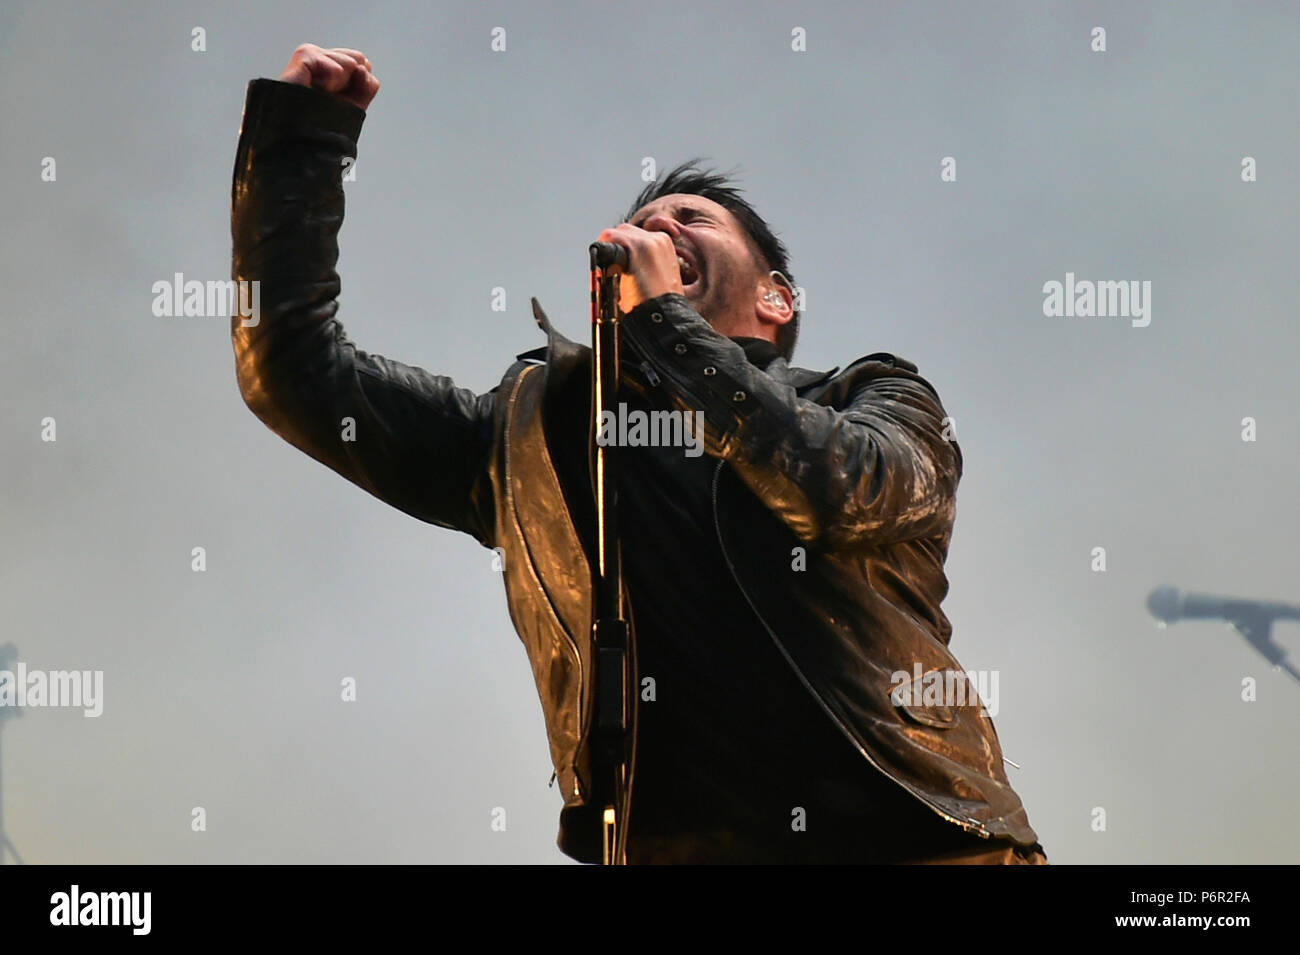 Panensky Tynec Czech Republic 30th June 2018 Nine Inch Nails Sweater Nin Group With Singer Trent Reznor Perform At Concert On The Third Day Of Aerodrome Festival In Friday